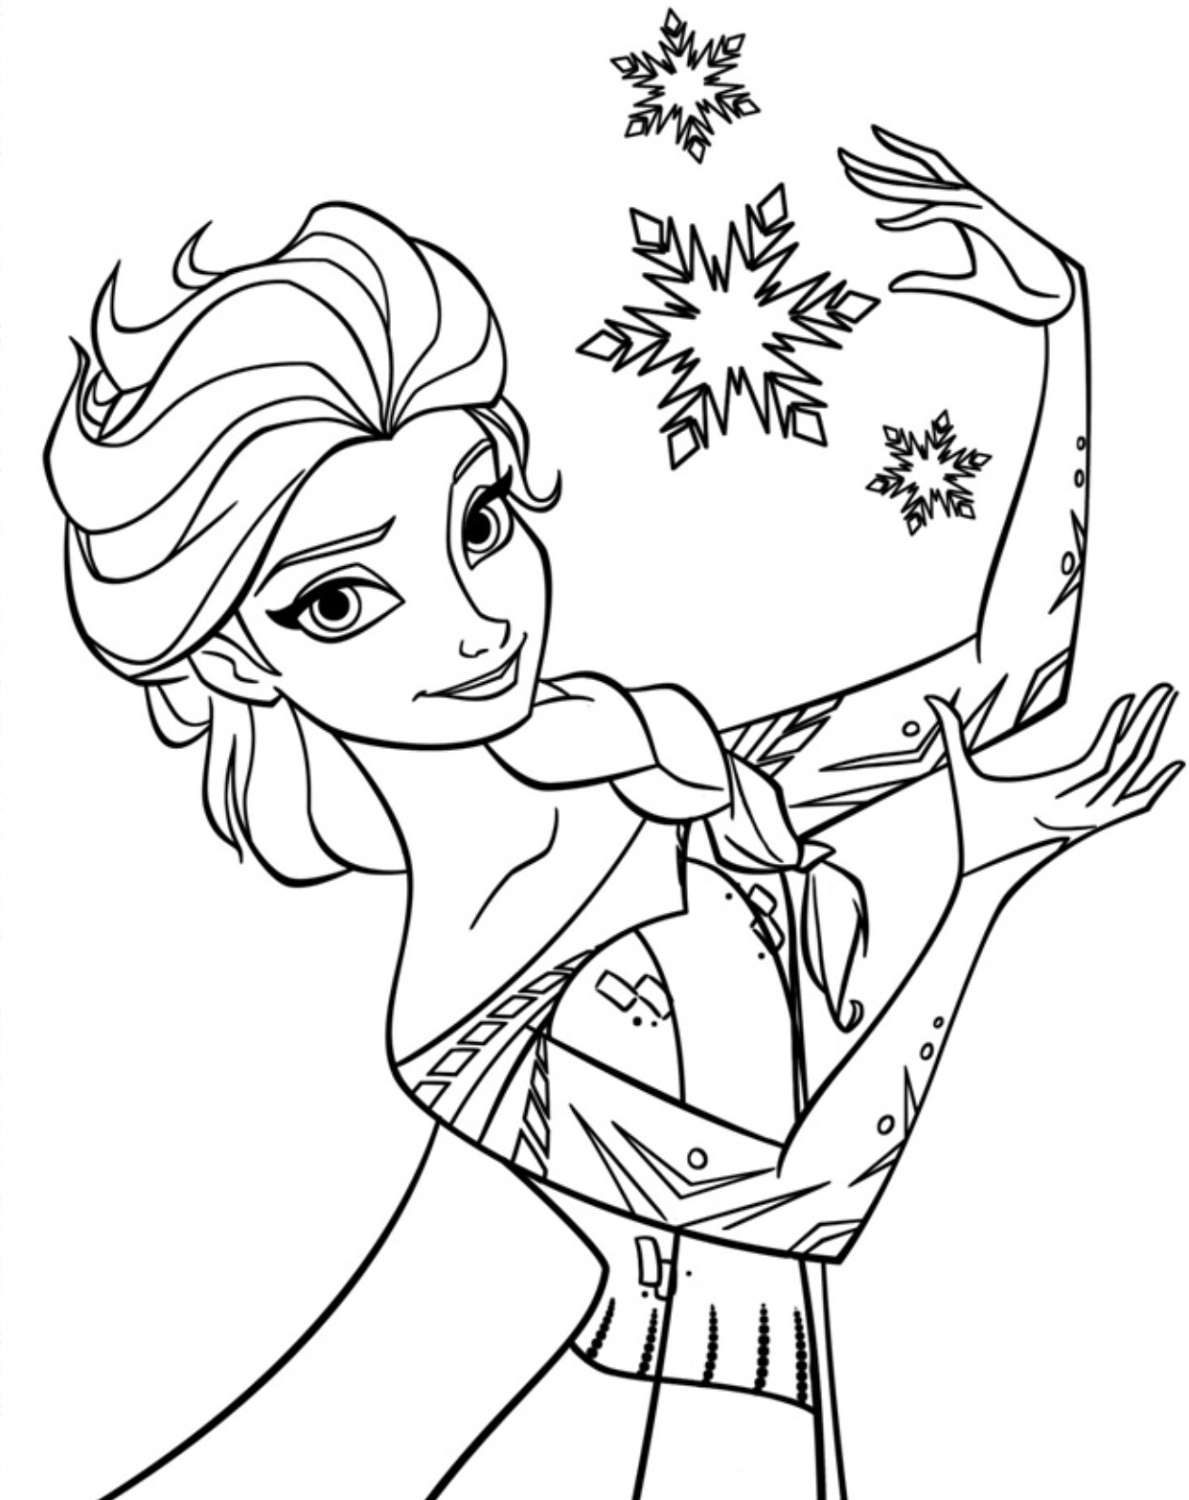 disney character outlines free disney outline cliparts download free clip art free character disney outlines